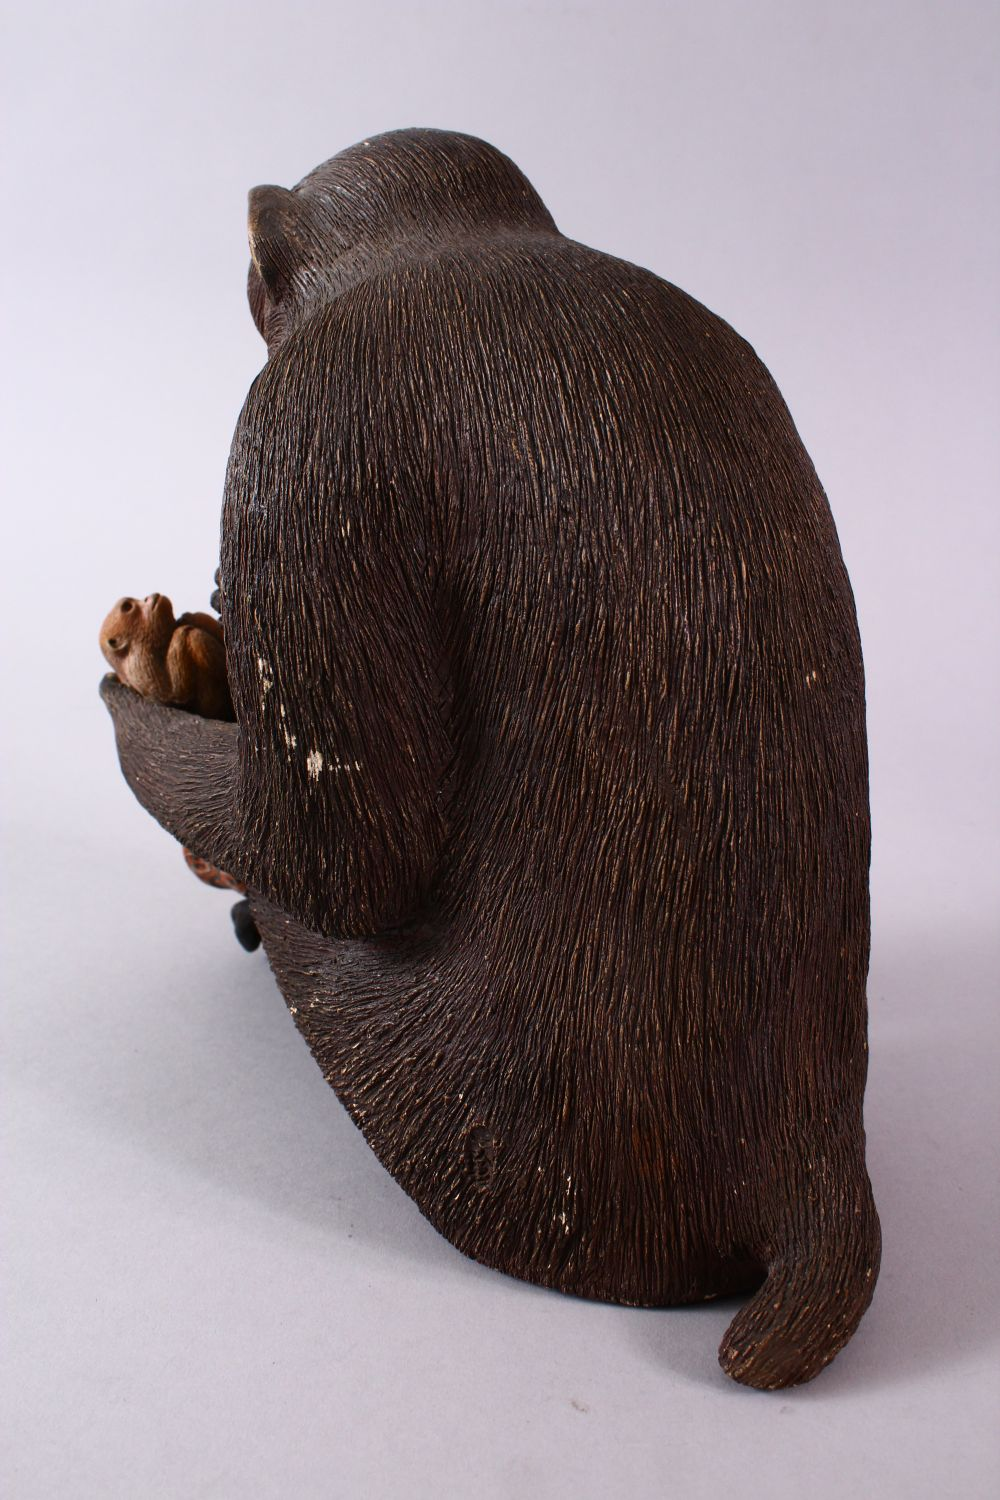 A JAPANESE POTTERY / TERRACOTTA MODEL OF A SEATED MONKEY, the monkey in a seated position holding - Image 6 of 10